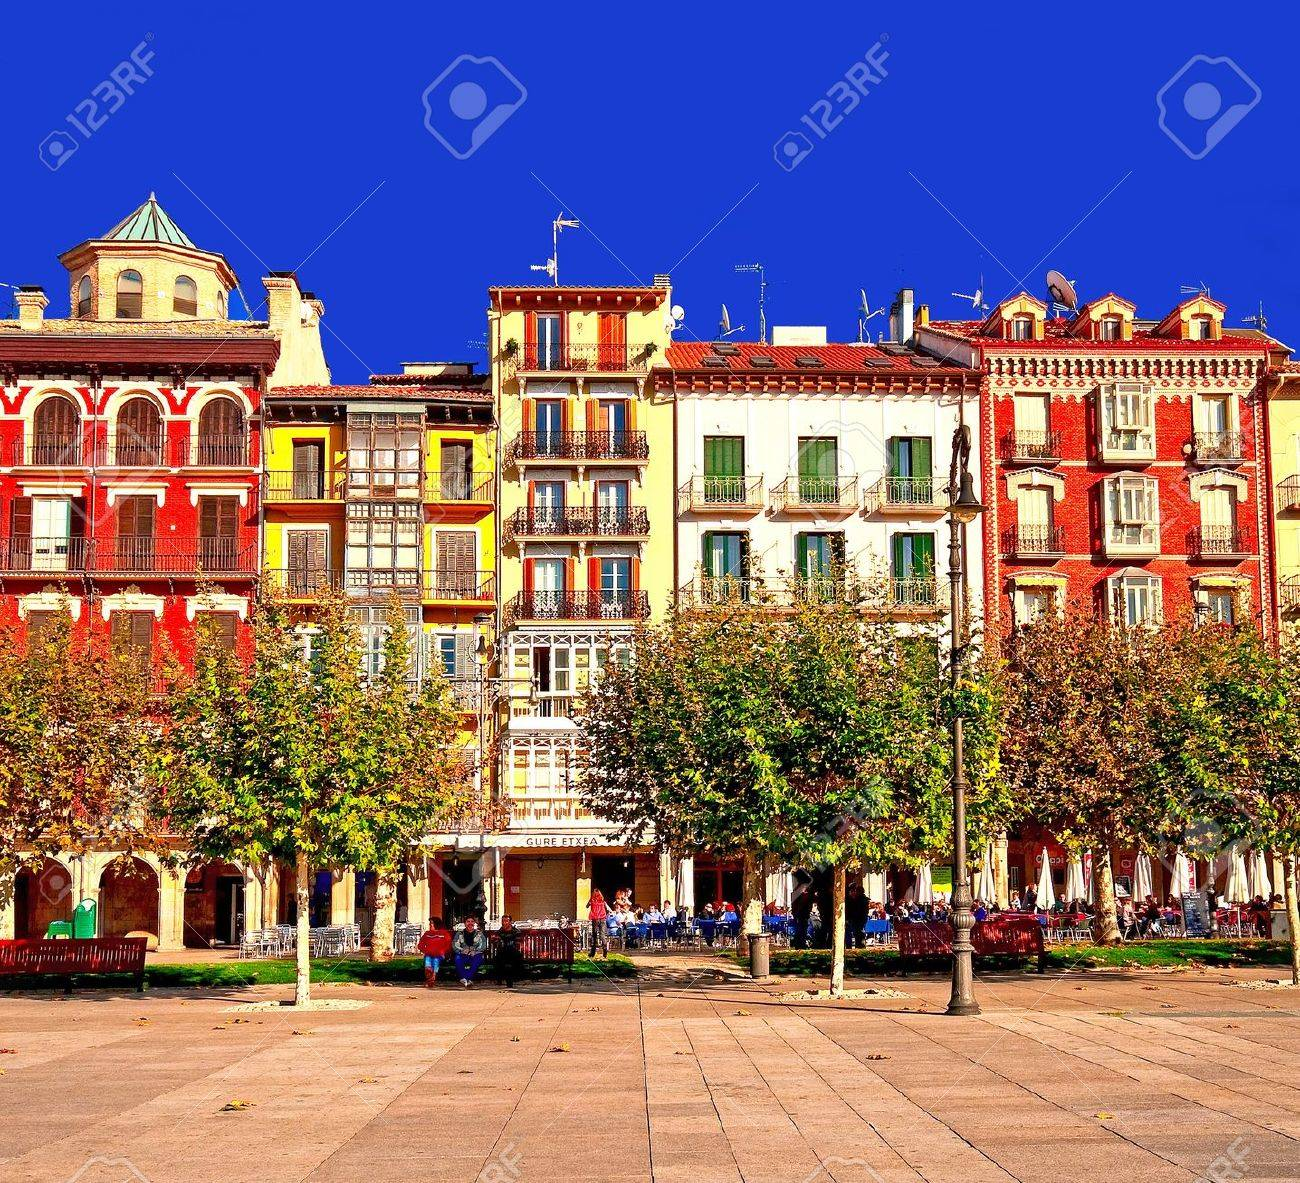 Pictures Of Nice Houses nice houses in the old town stock photo, picture and royalty free